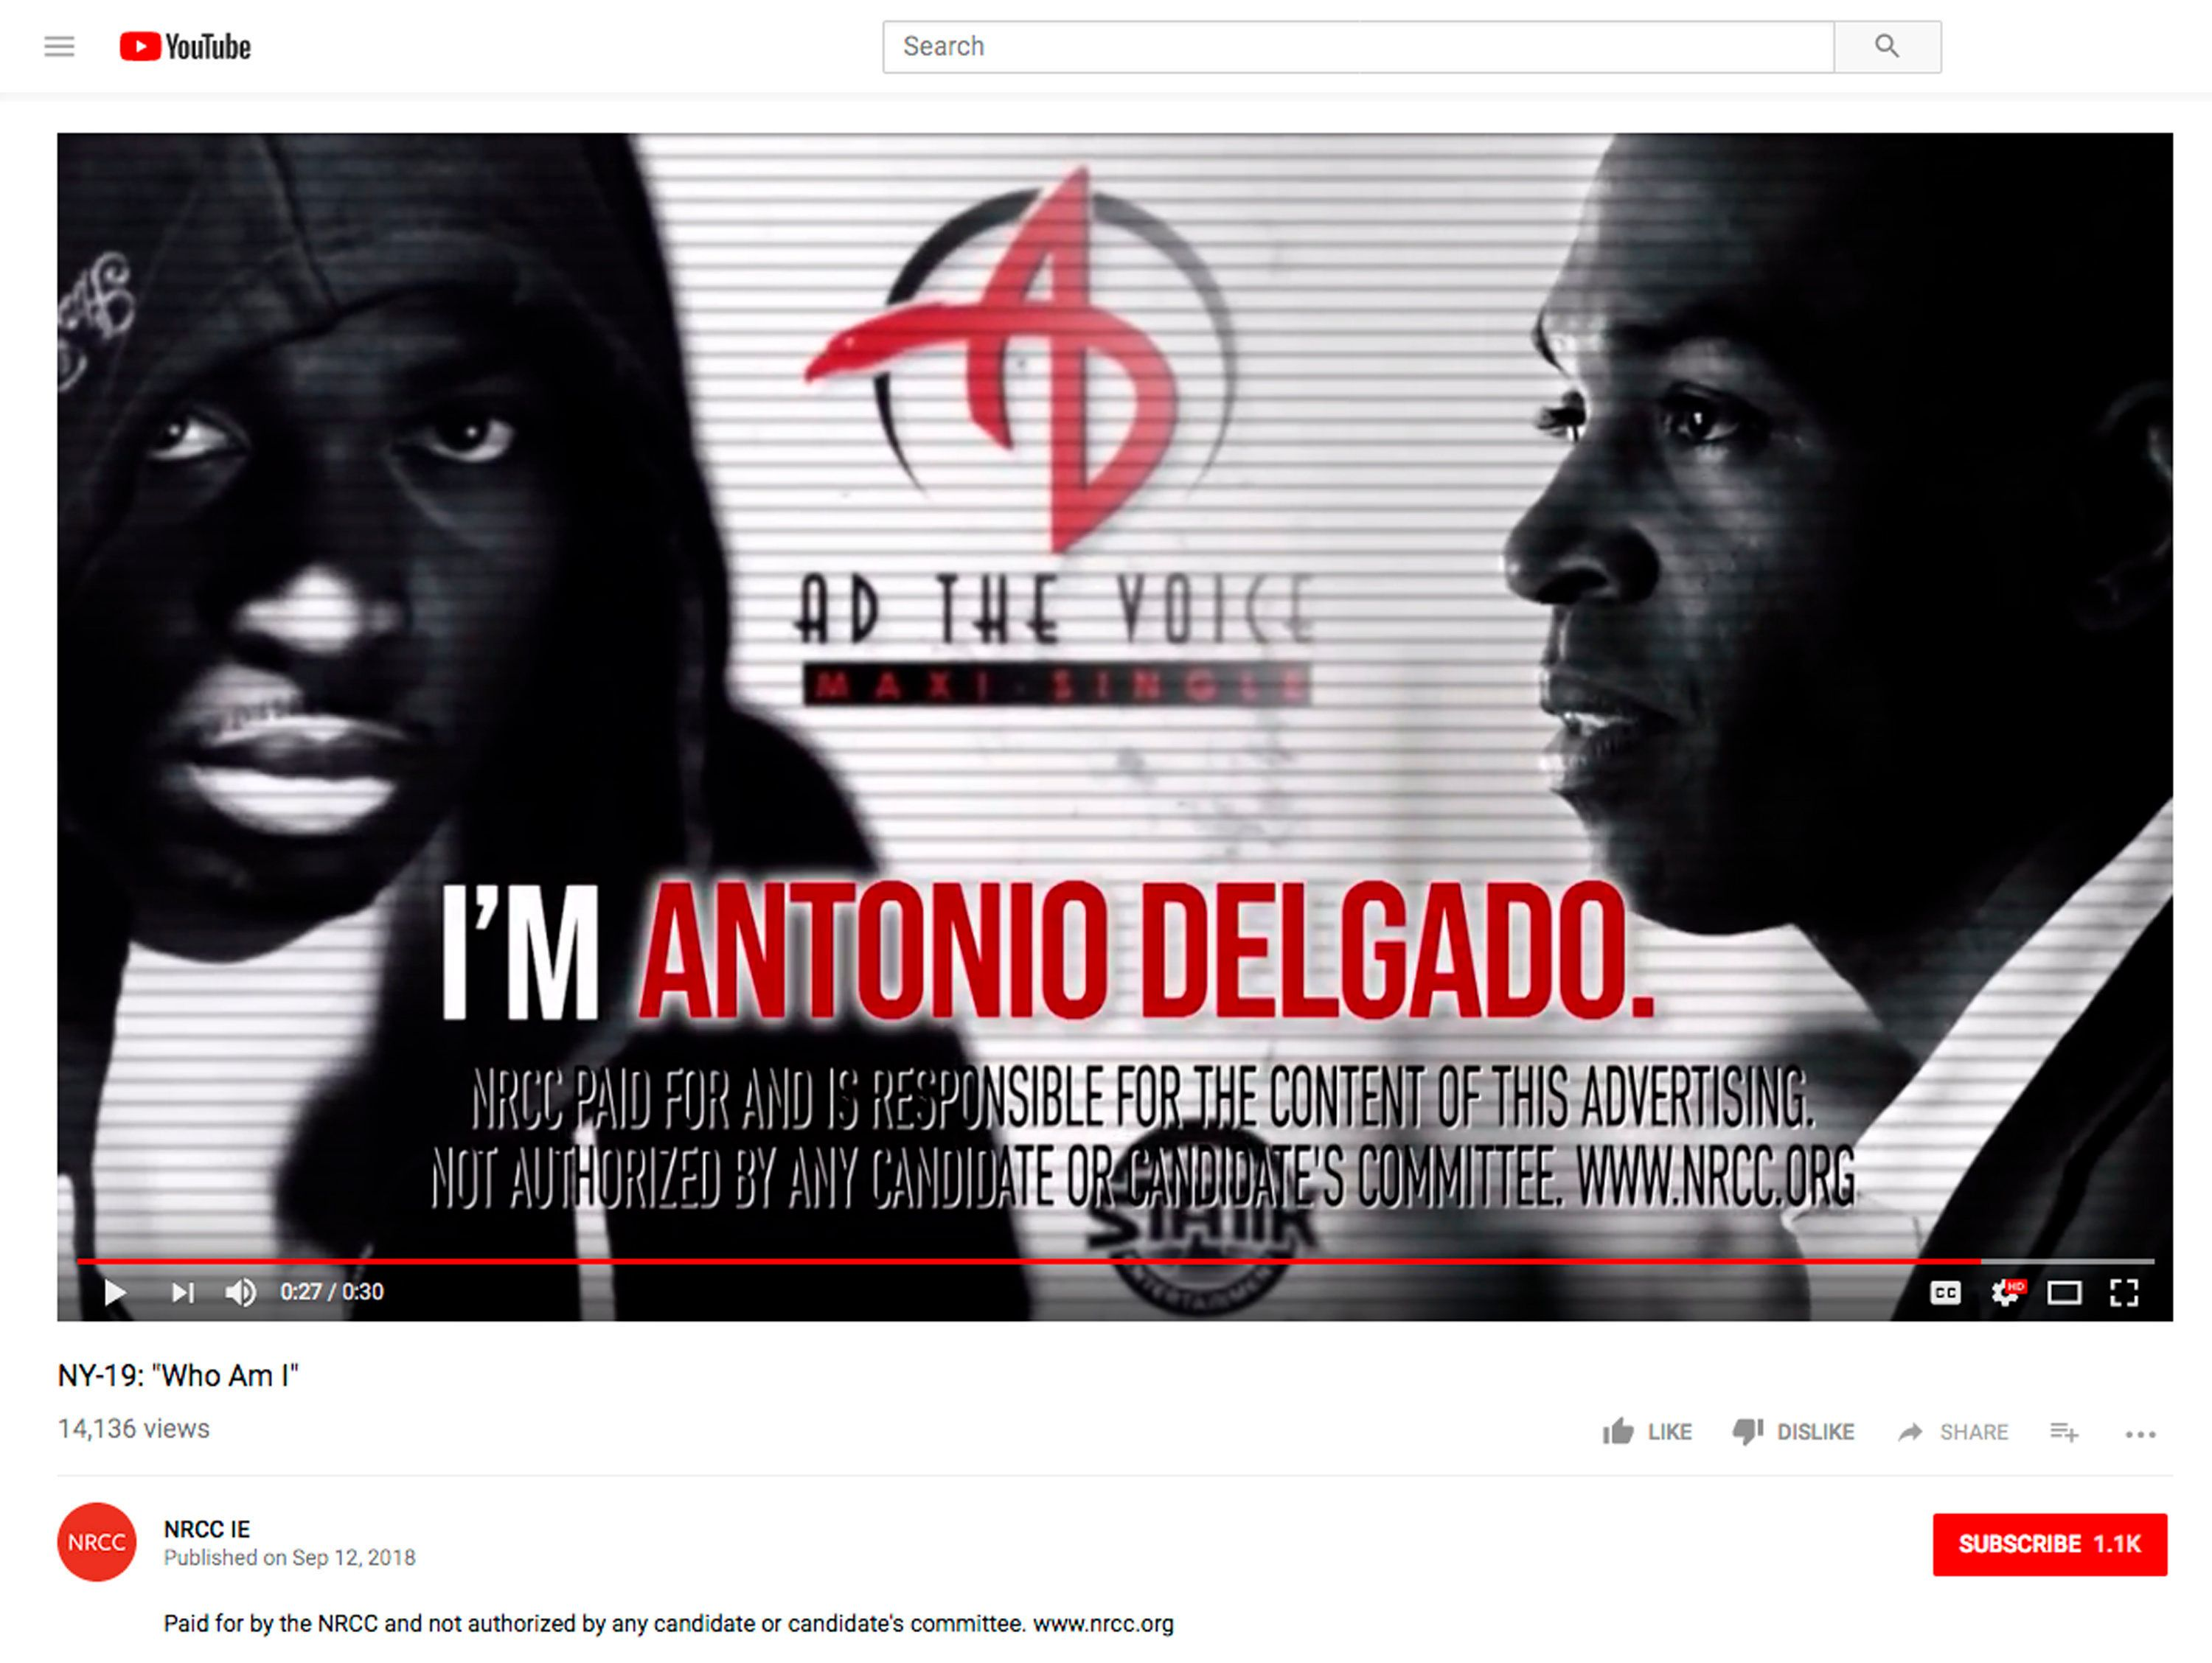 This screen shot is from a campaign ad posted on YouTube posted by the National Republican Campaign Committee for New York's 19th Congressional District contest between first-term Republican Rep. John Faso and Democratic challenger Antonio Delgado, invoking his past as a rapper. It is among several attack ads raising critiques of how race and ethnicity are being injected into some of this election cycle's races, also including the New York governor's race, where accusations of anti-Semitism were invoked. (YouTube via AP)